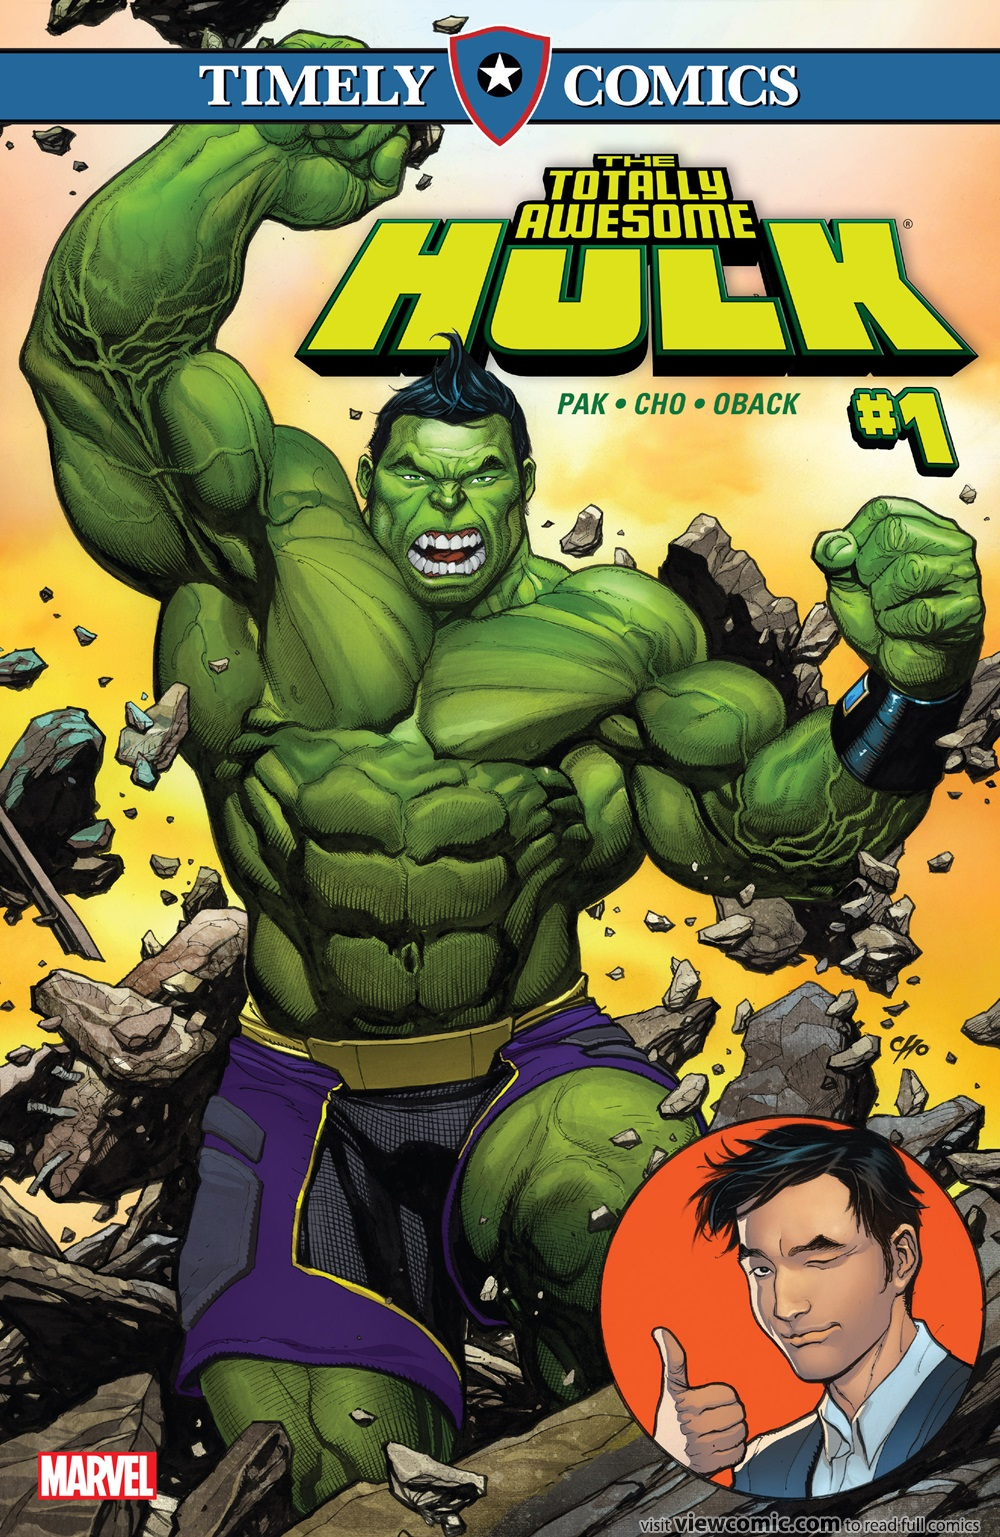 Timely Comics The Totally Awesome Hulk